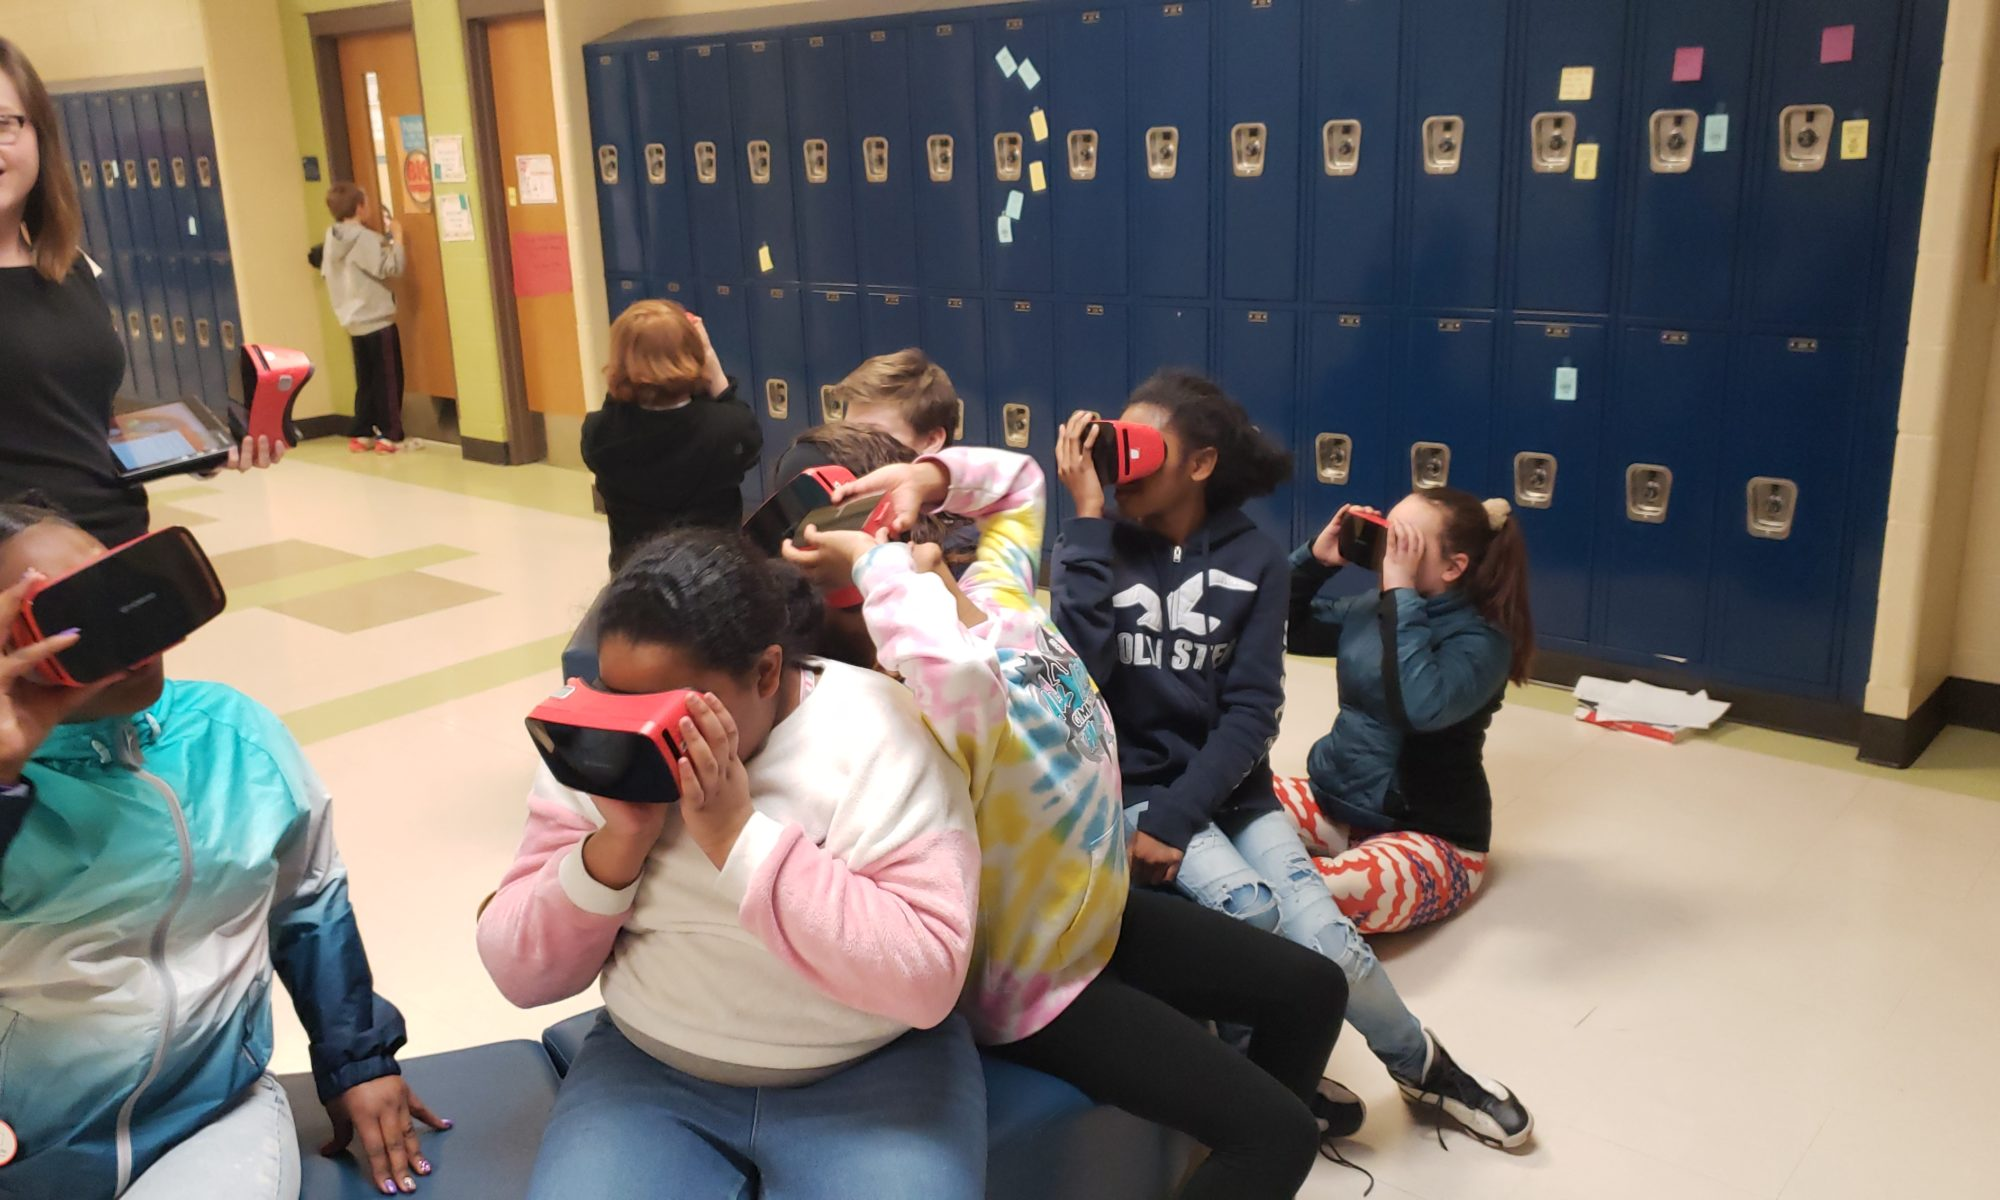 Middle School students using VR